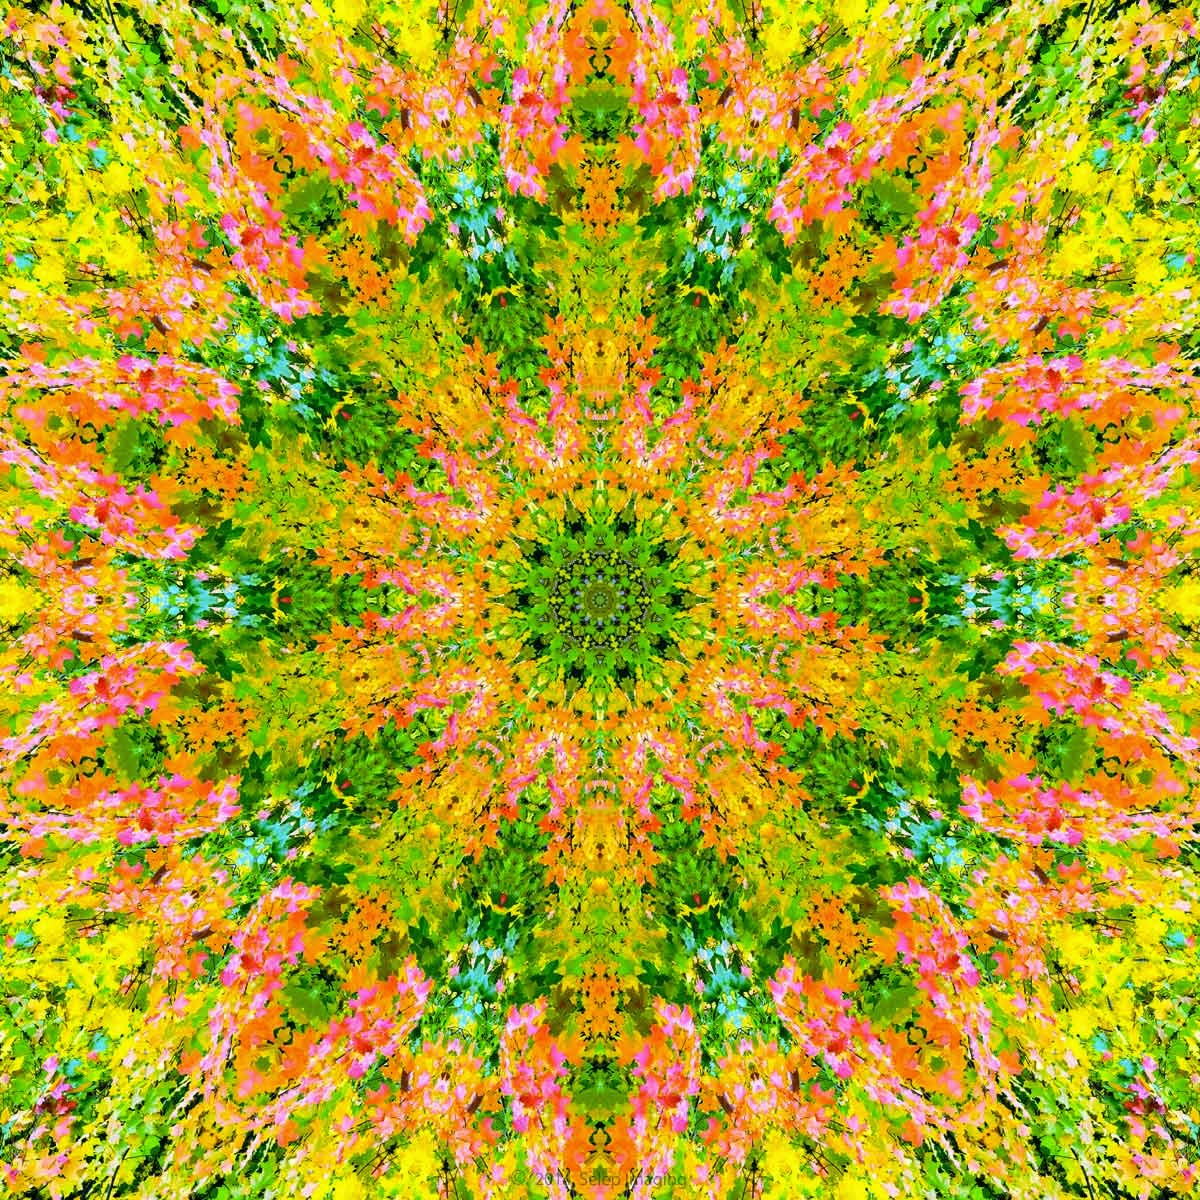 Kaleidoscope photo art by Jeanne Selep